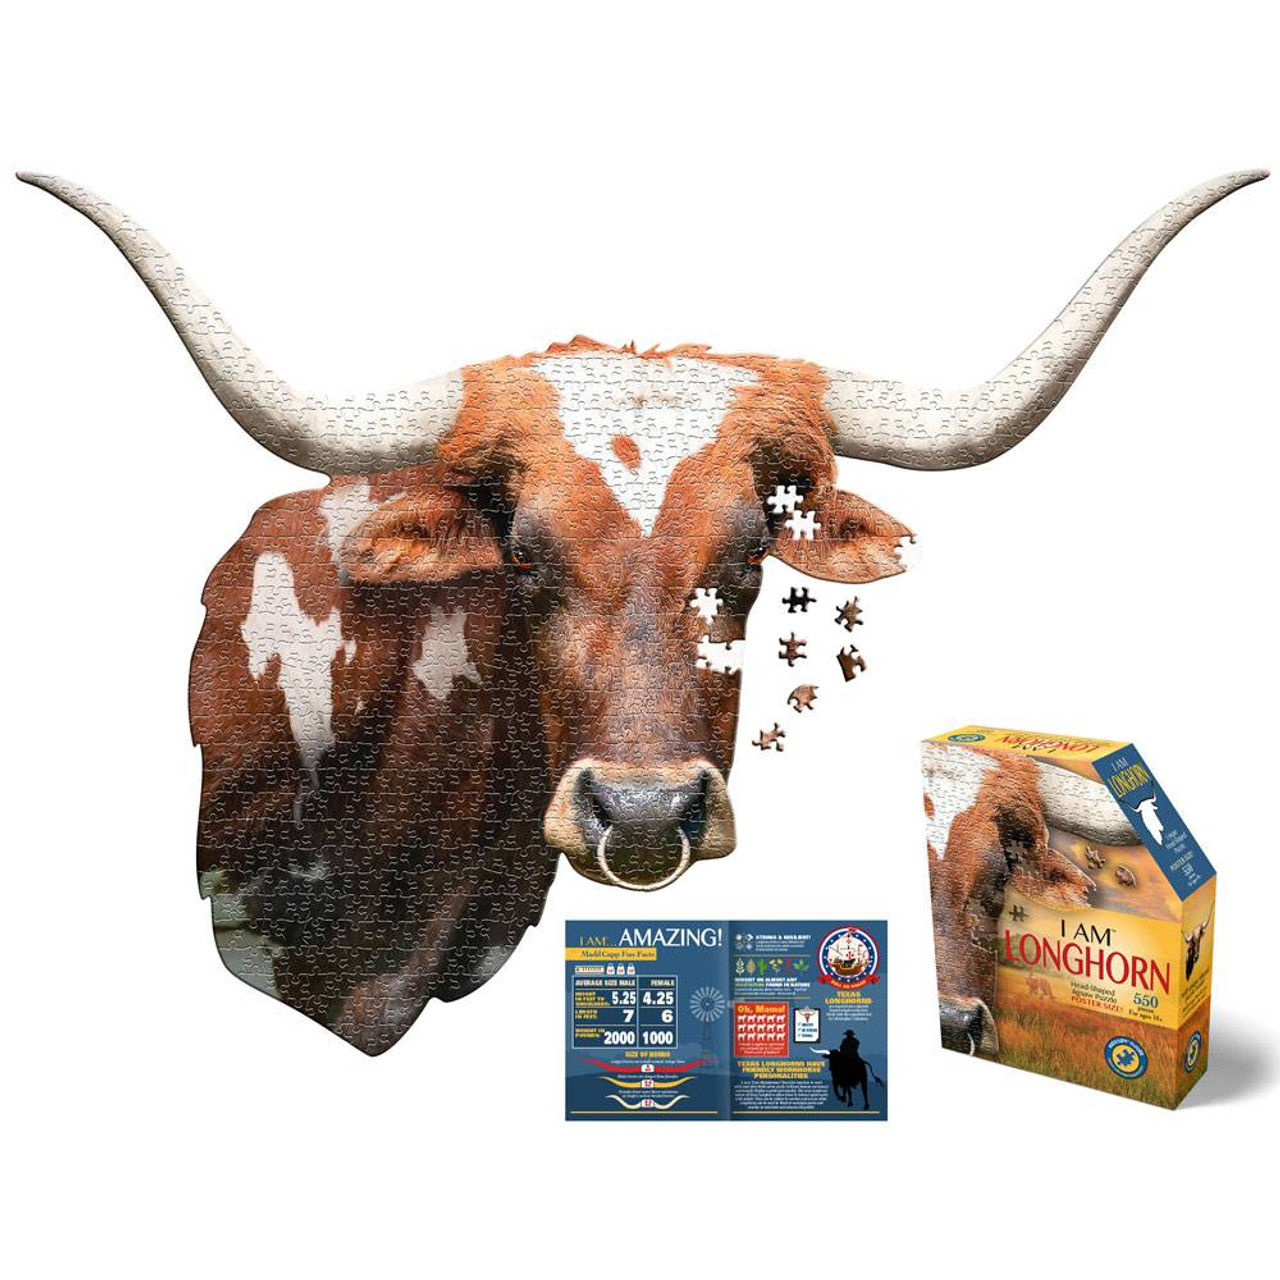 550 Piece Longhorn Head Shaped Puzzle | American Expedition